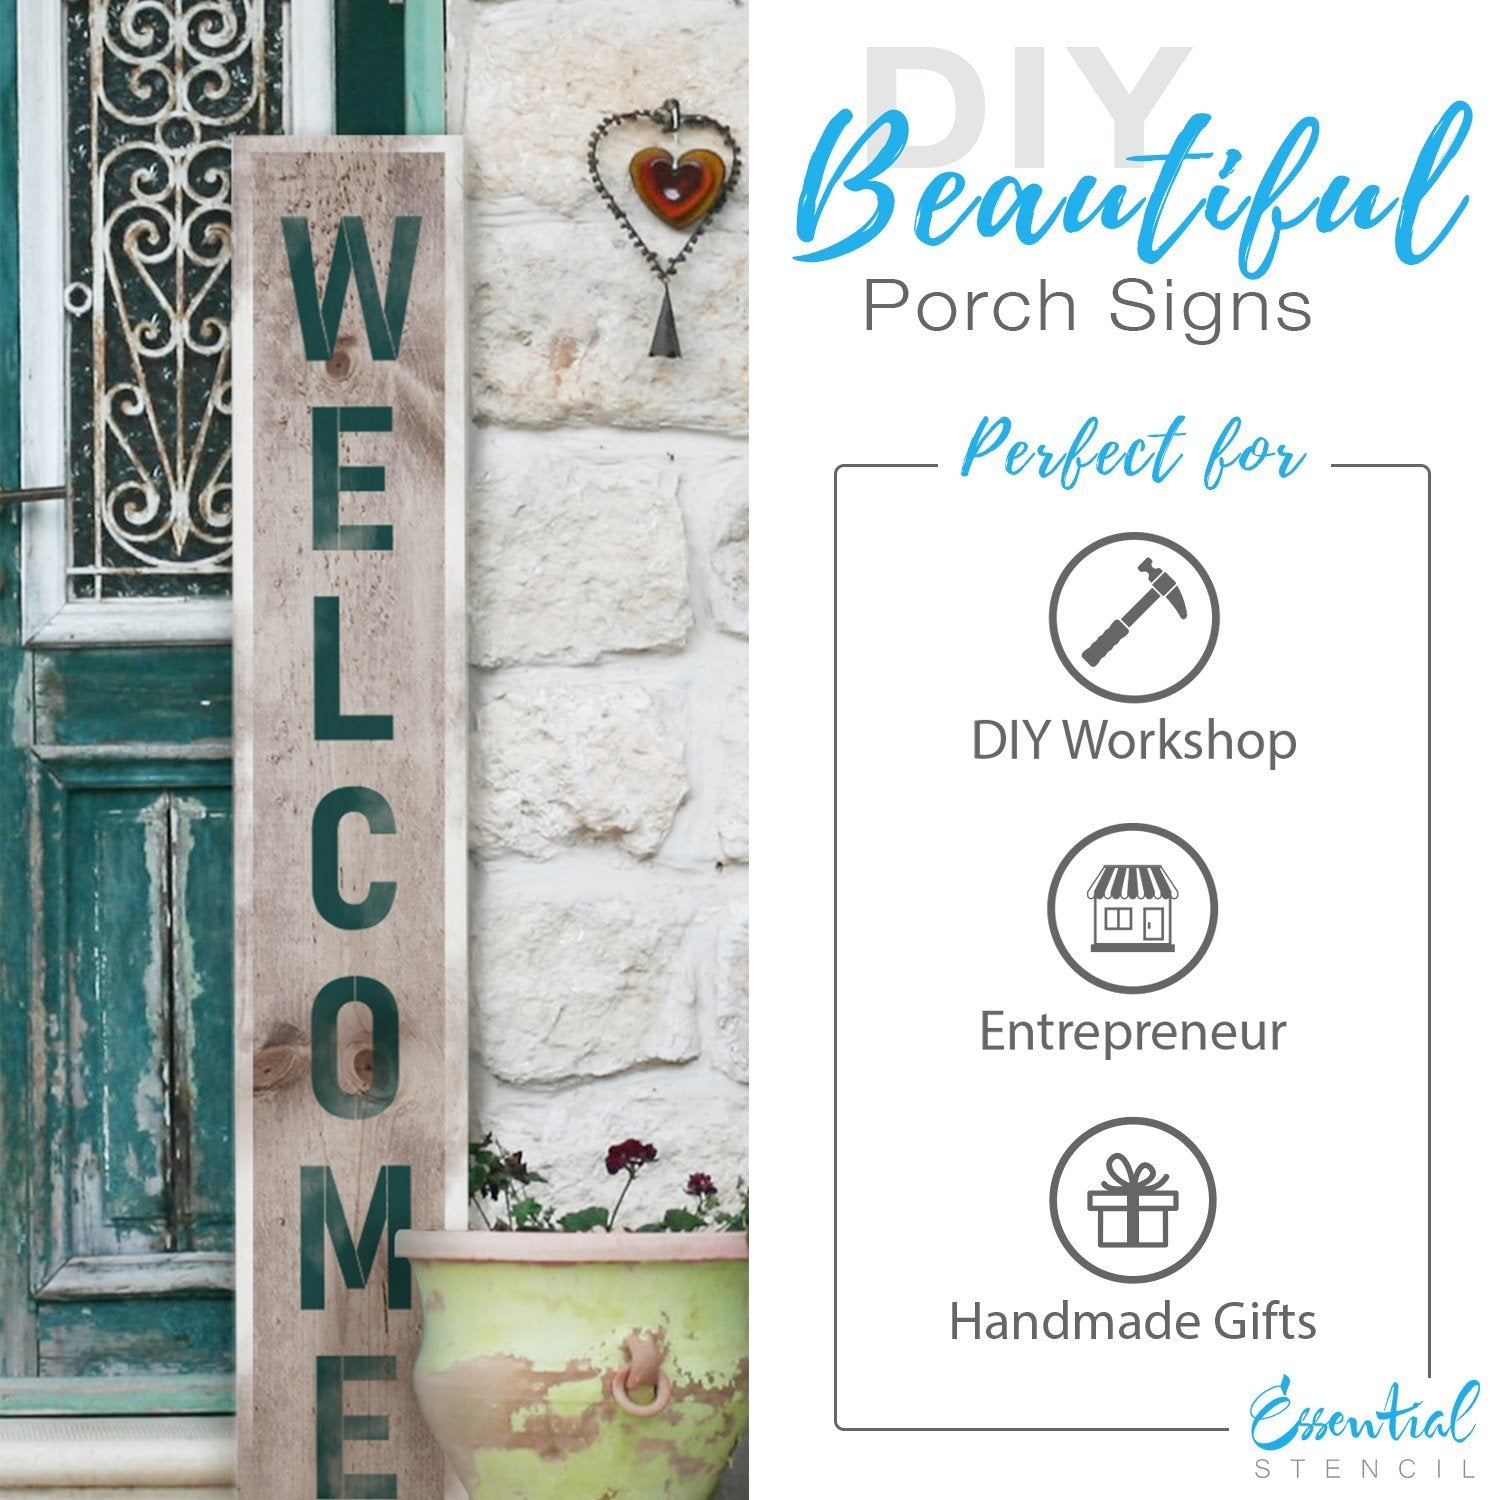 Alphabet reusable Stencils 5 inch Letters, diy farmhouse porch signs, Welcome front porch leaner sign